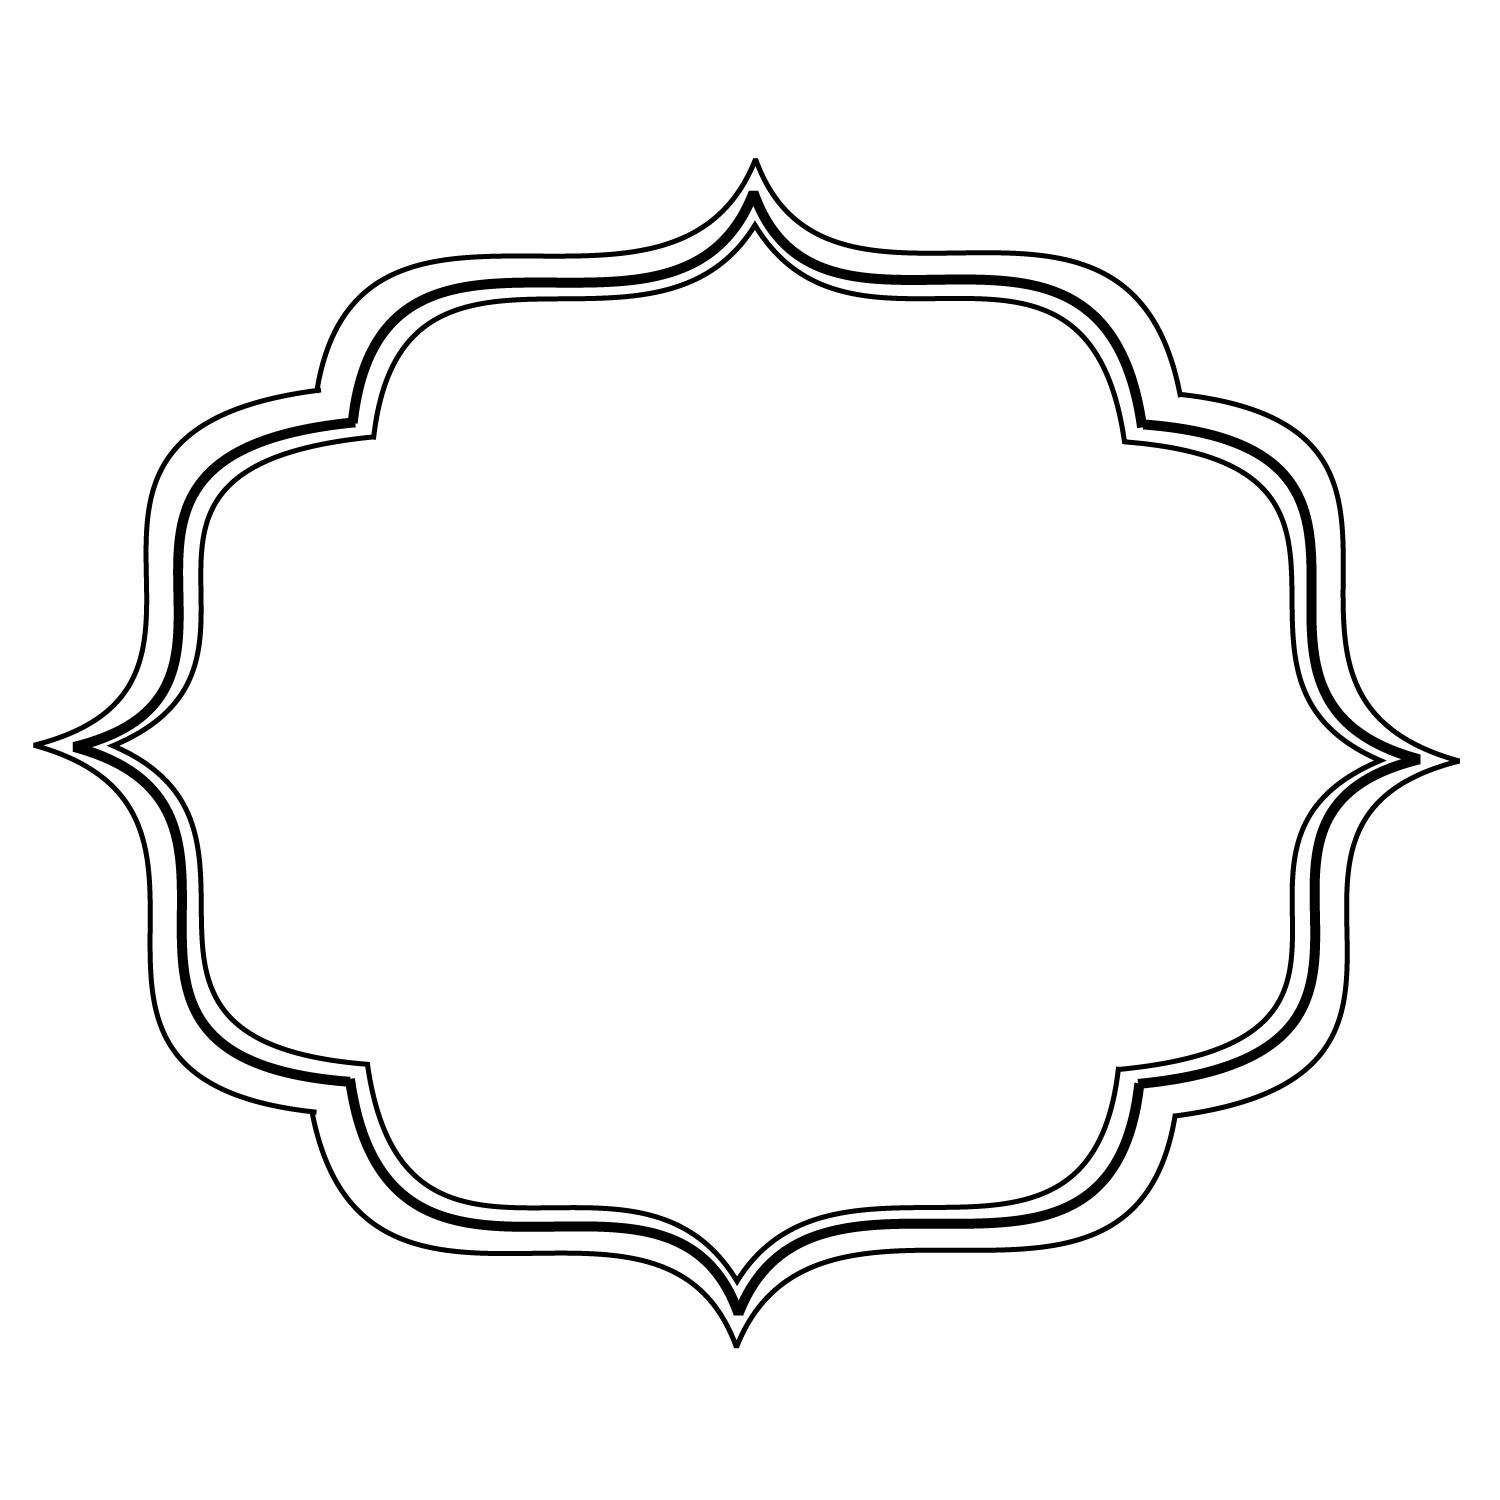 Simple Filigree Scroll Designs | Frame image - vector clip ...